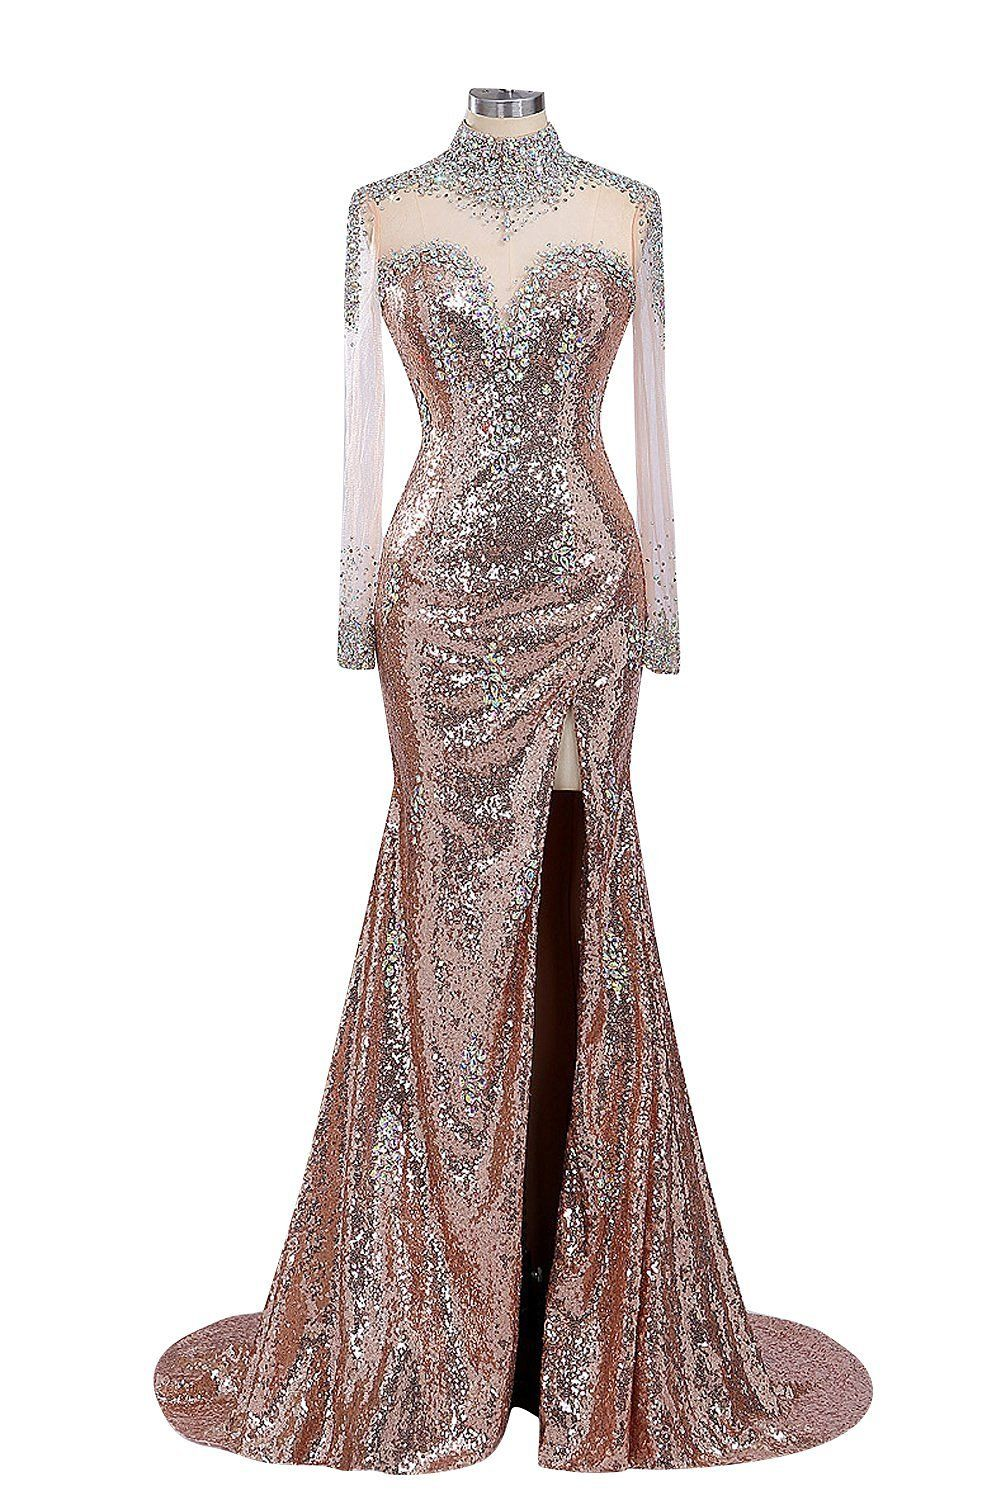 Fanciest womenus high neck sequin long evening dresses with sleeves